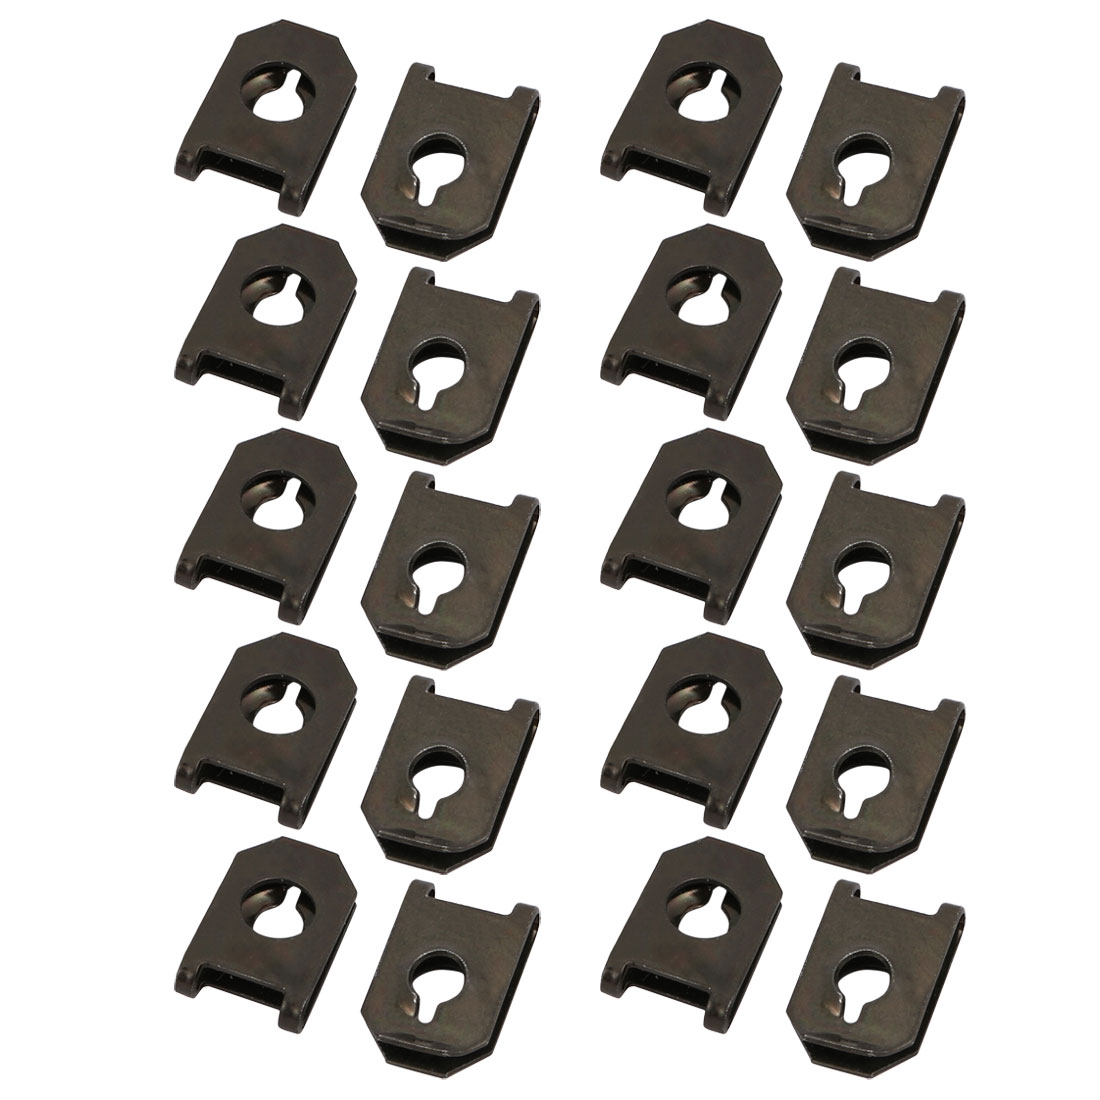 20pcs 65Mn Spring Steel Oxidized Black Extruded U Nut Clip for ST6.3 Bolt